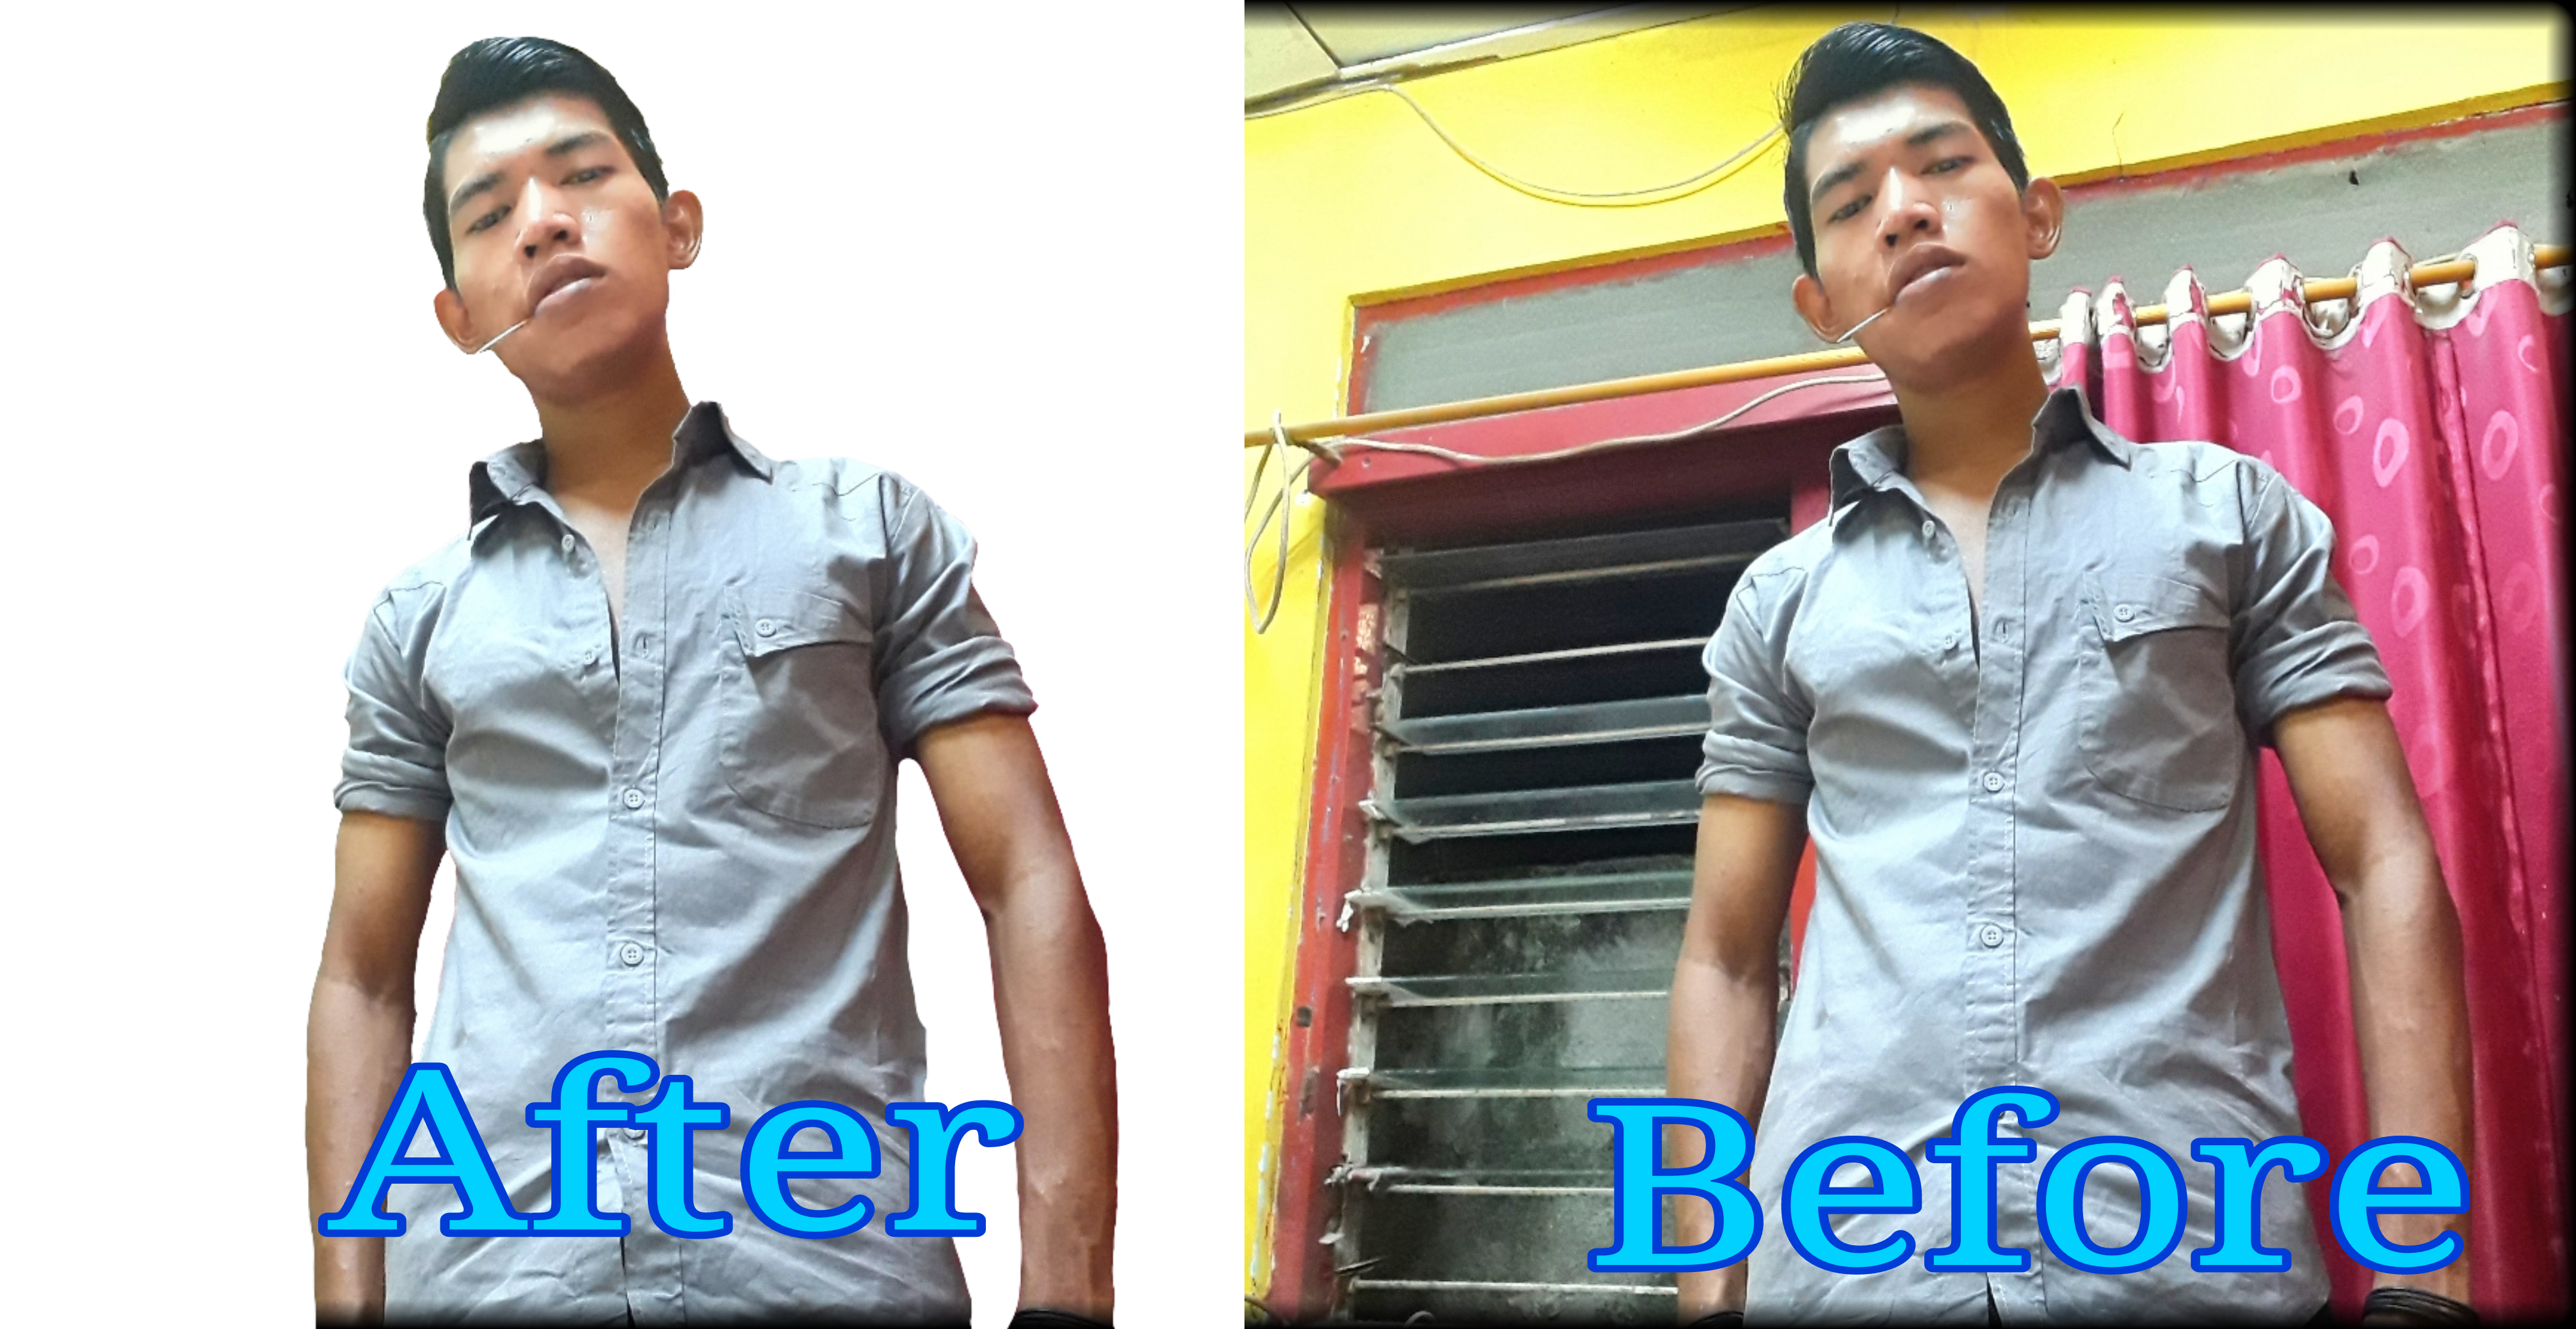 photo editing services remove background and edit all types of photos